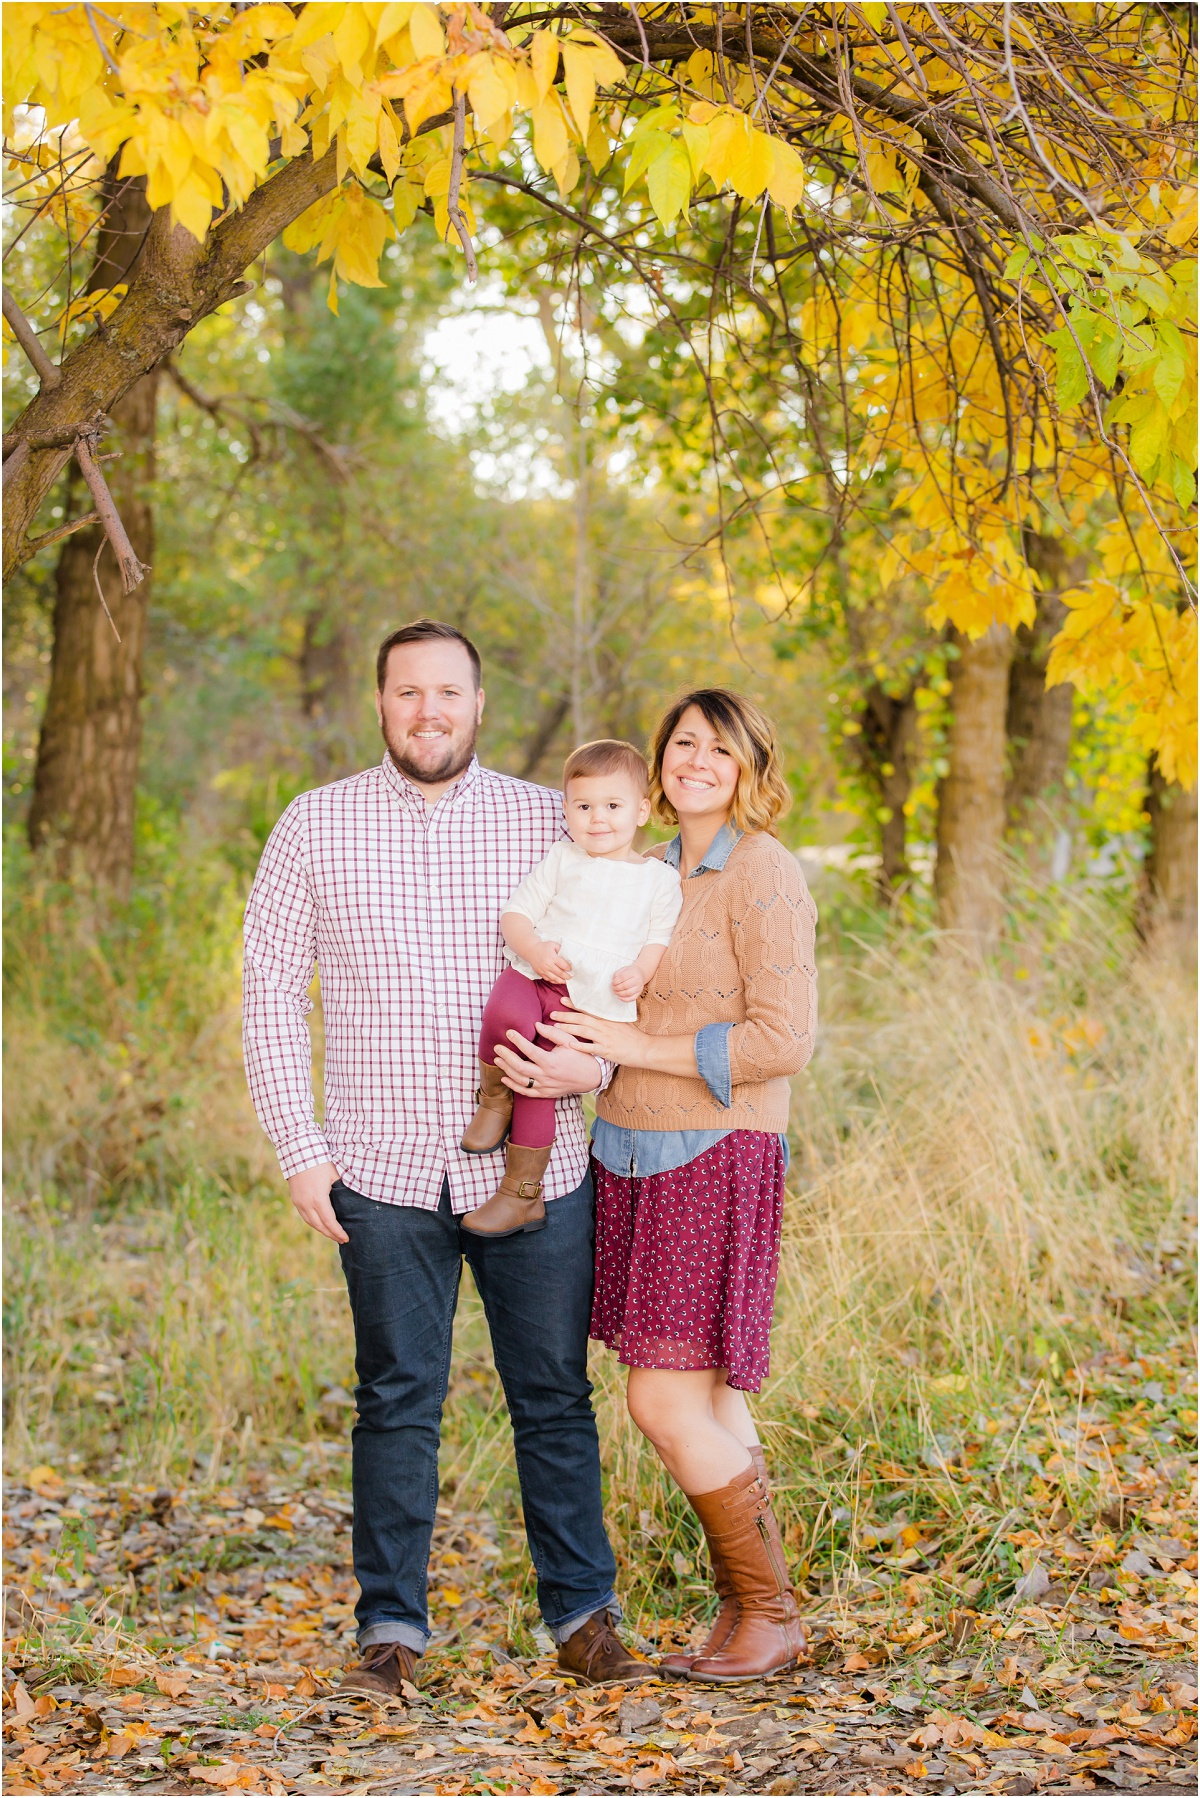 Terra Cooper Photography Utah Family Photography_5087.jpg